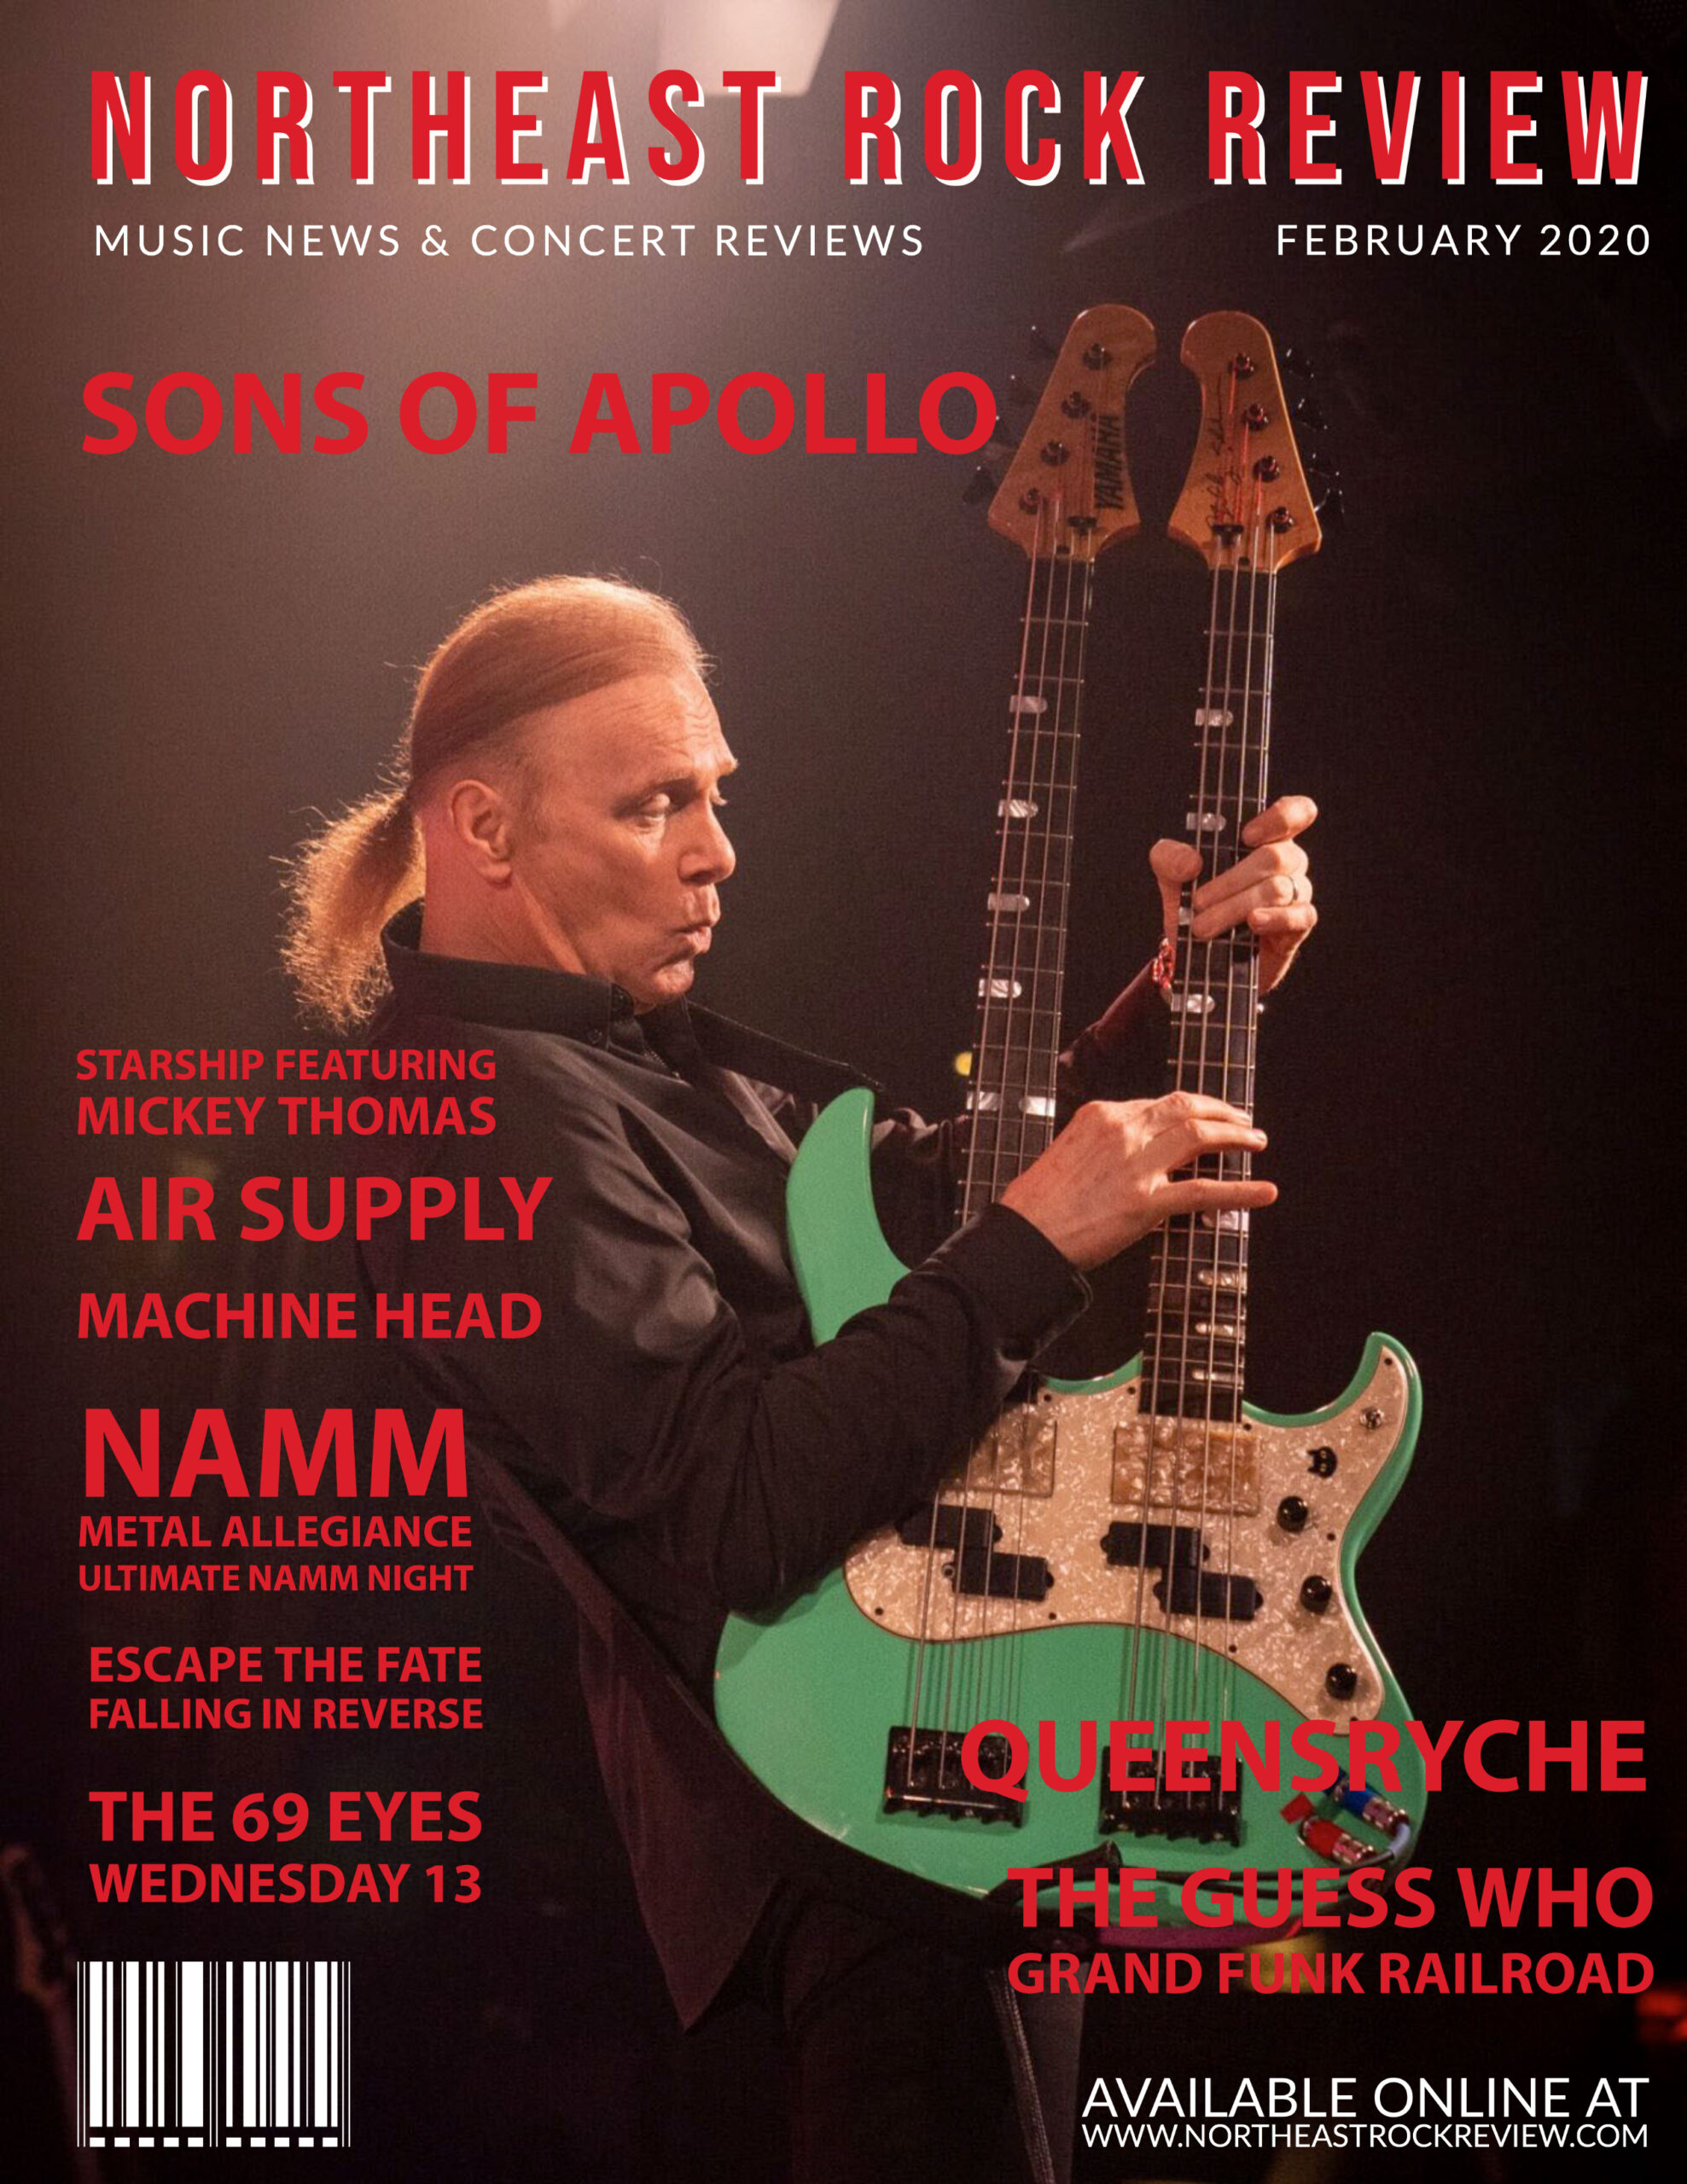 Northeast Rock Review - Billy Sheehan